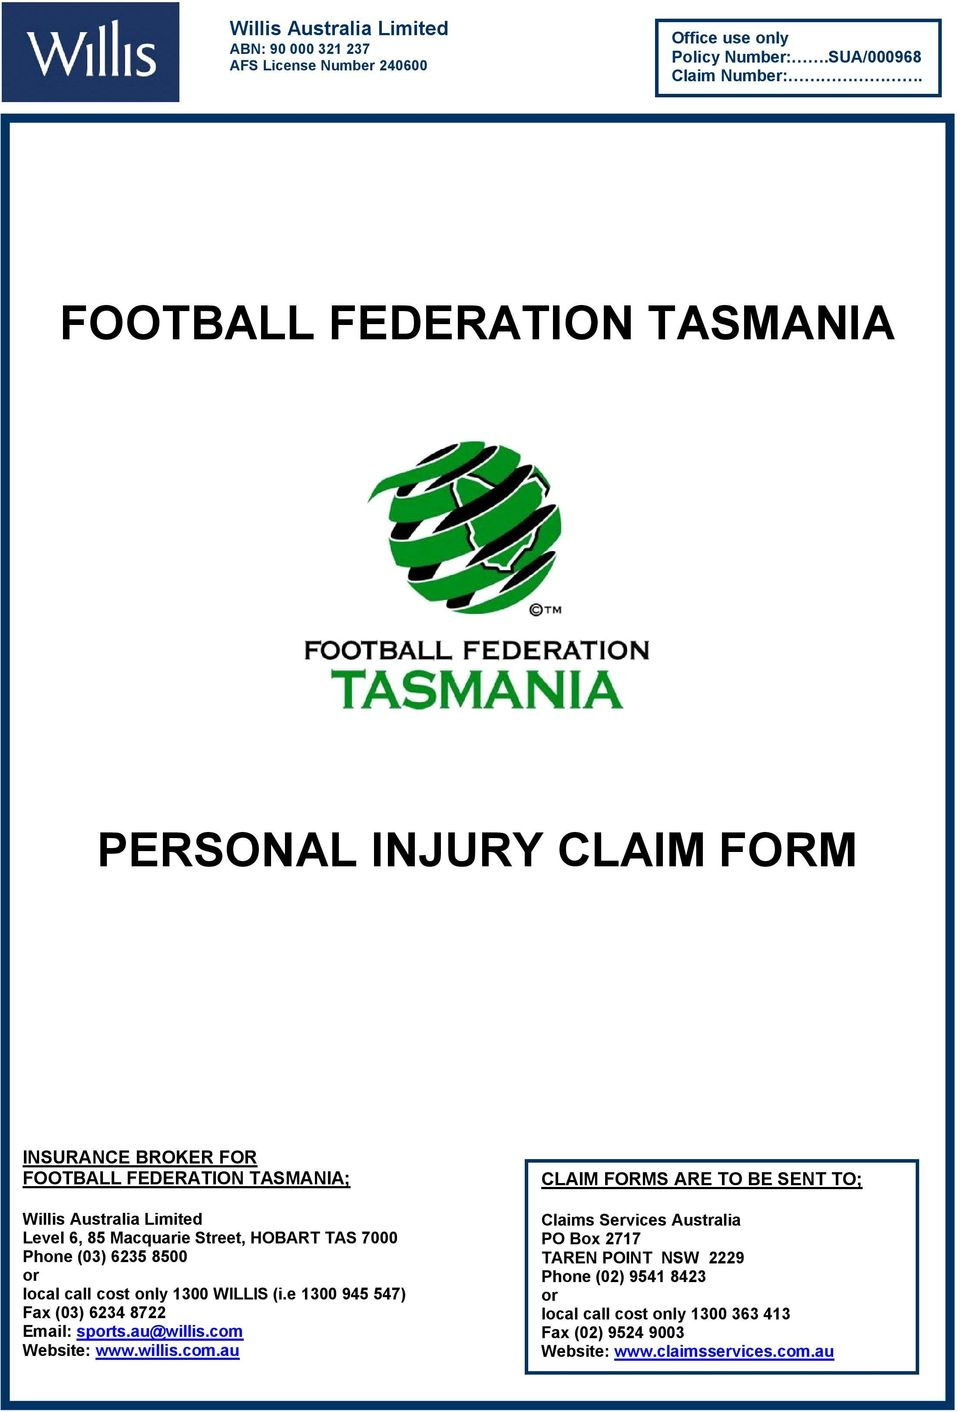 HOBART TAS 7000 Phone (03) 6235 8500 or local call cost only 1300 WILLIS (i.e 1300 945 547) Fax (03) 6234 8722 Email: sports.au@willis.com